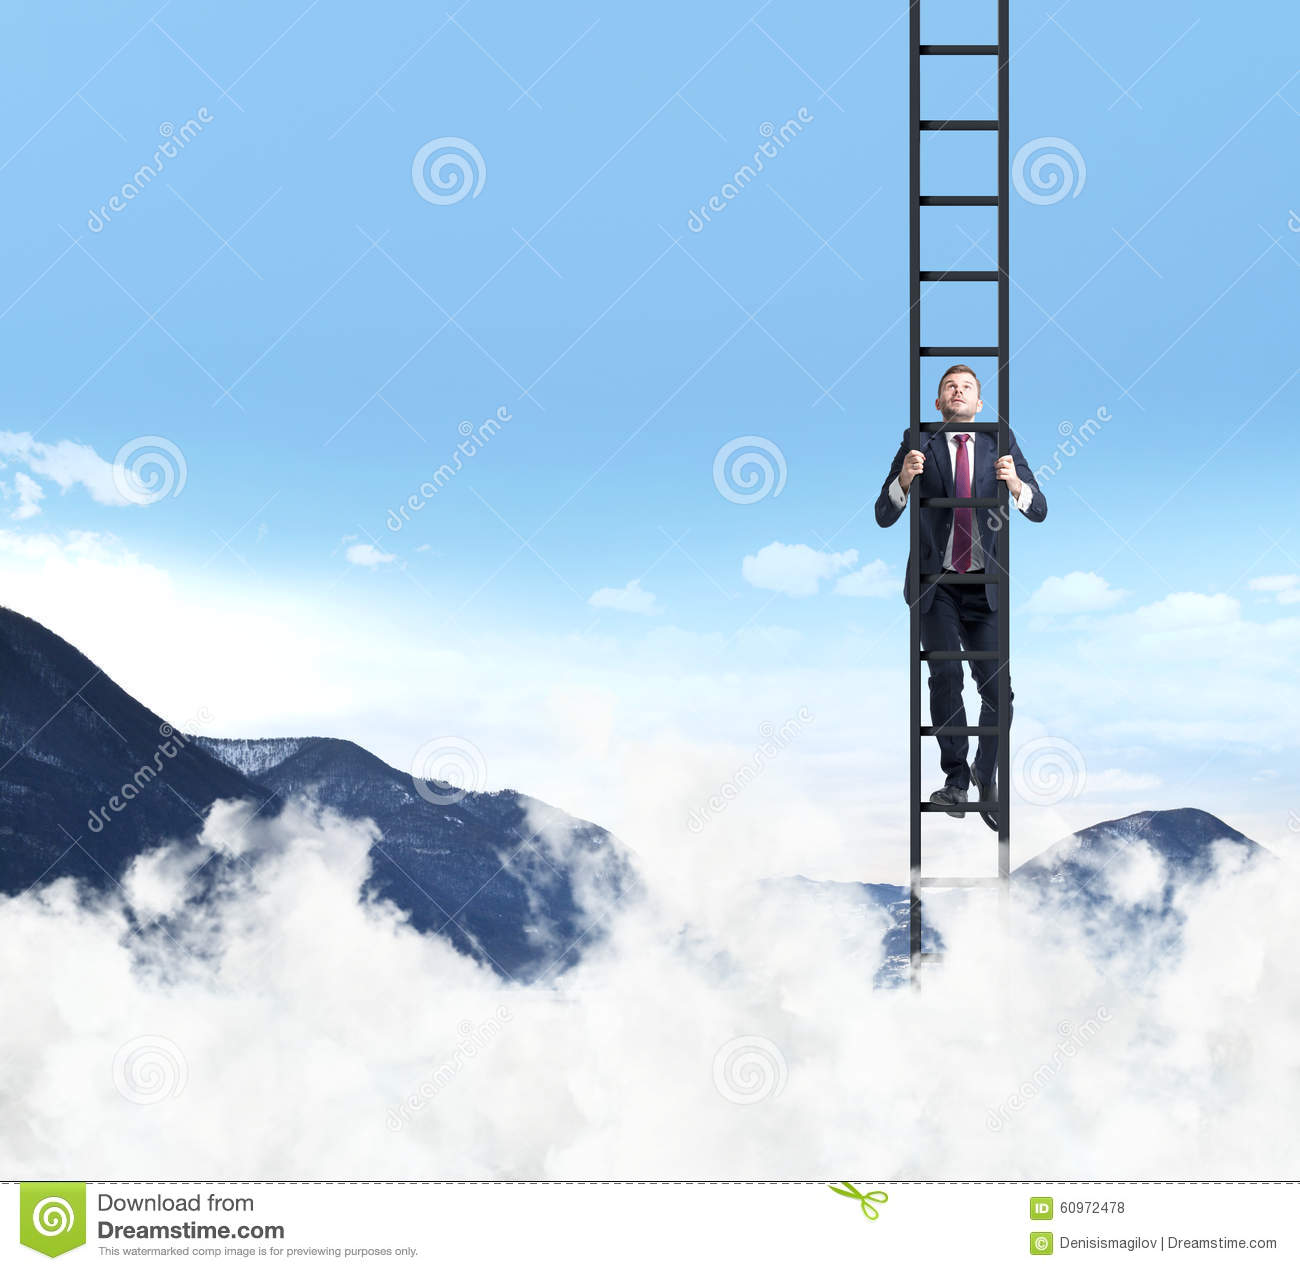 a man is climbing up the ladder clouds and mountain landscape a man is climbing up the ladder clouds and mountain landscape